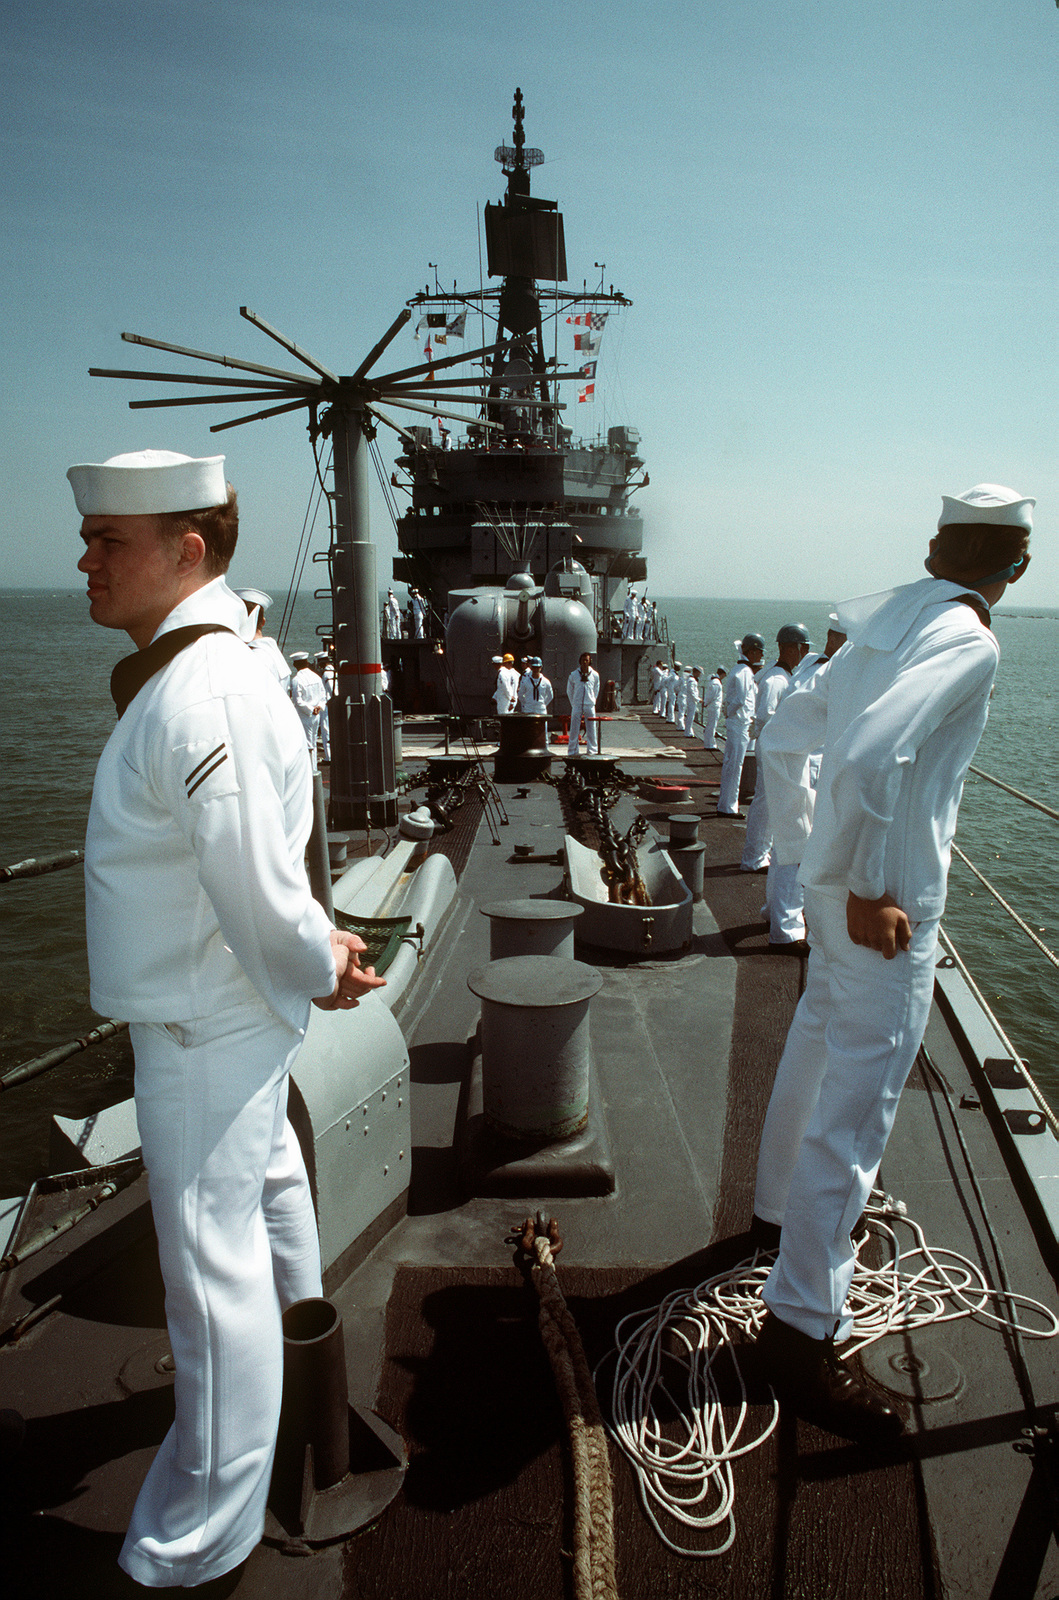 Sailors aboard the guided missile destroyer USS MACDONOUGH (DDG-39) man the rails as the ship approaches the mouth of the Cooper River and the ship's home port of Naval Station, Charleston, S.C. The MACDONOUGH is returning to Charleston following its deployment to the Persian Gulf region for Operation Desert Shield and Operation Desert Storm